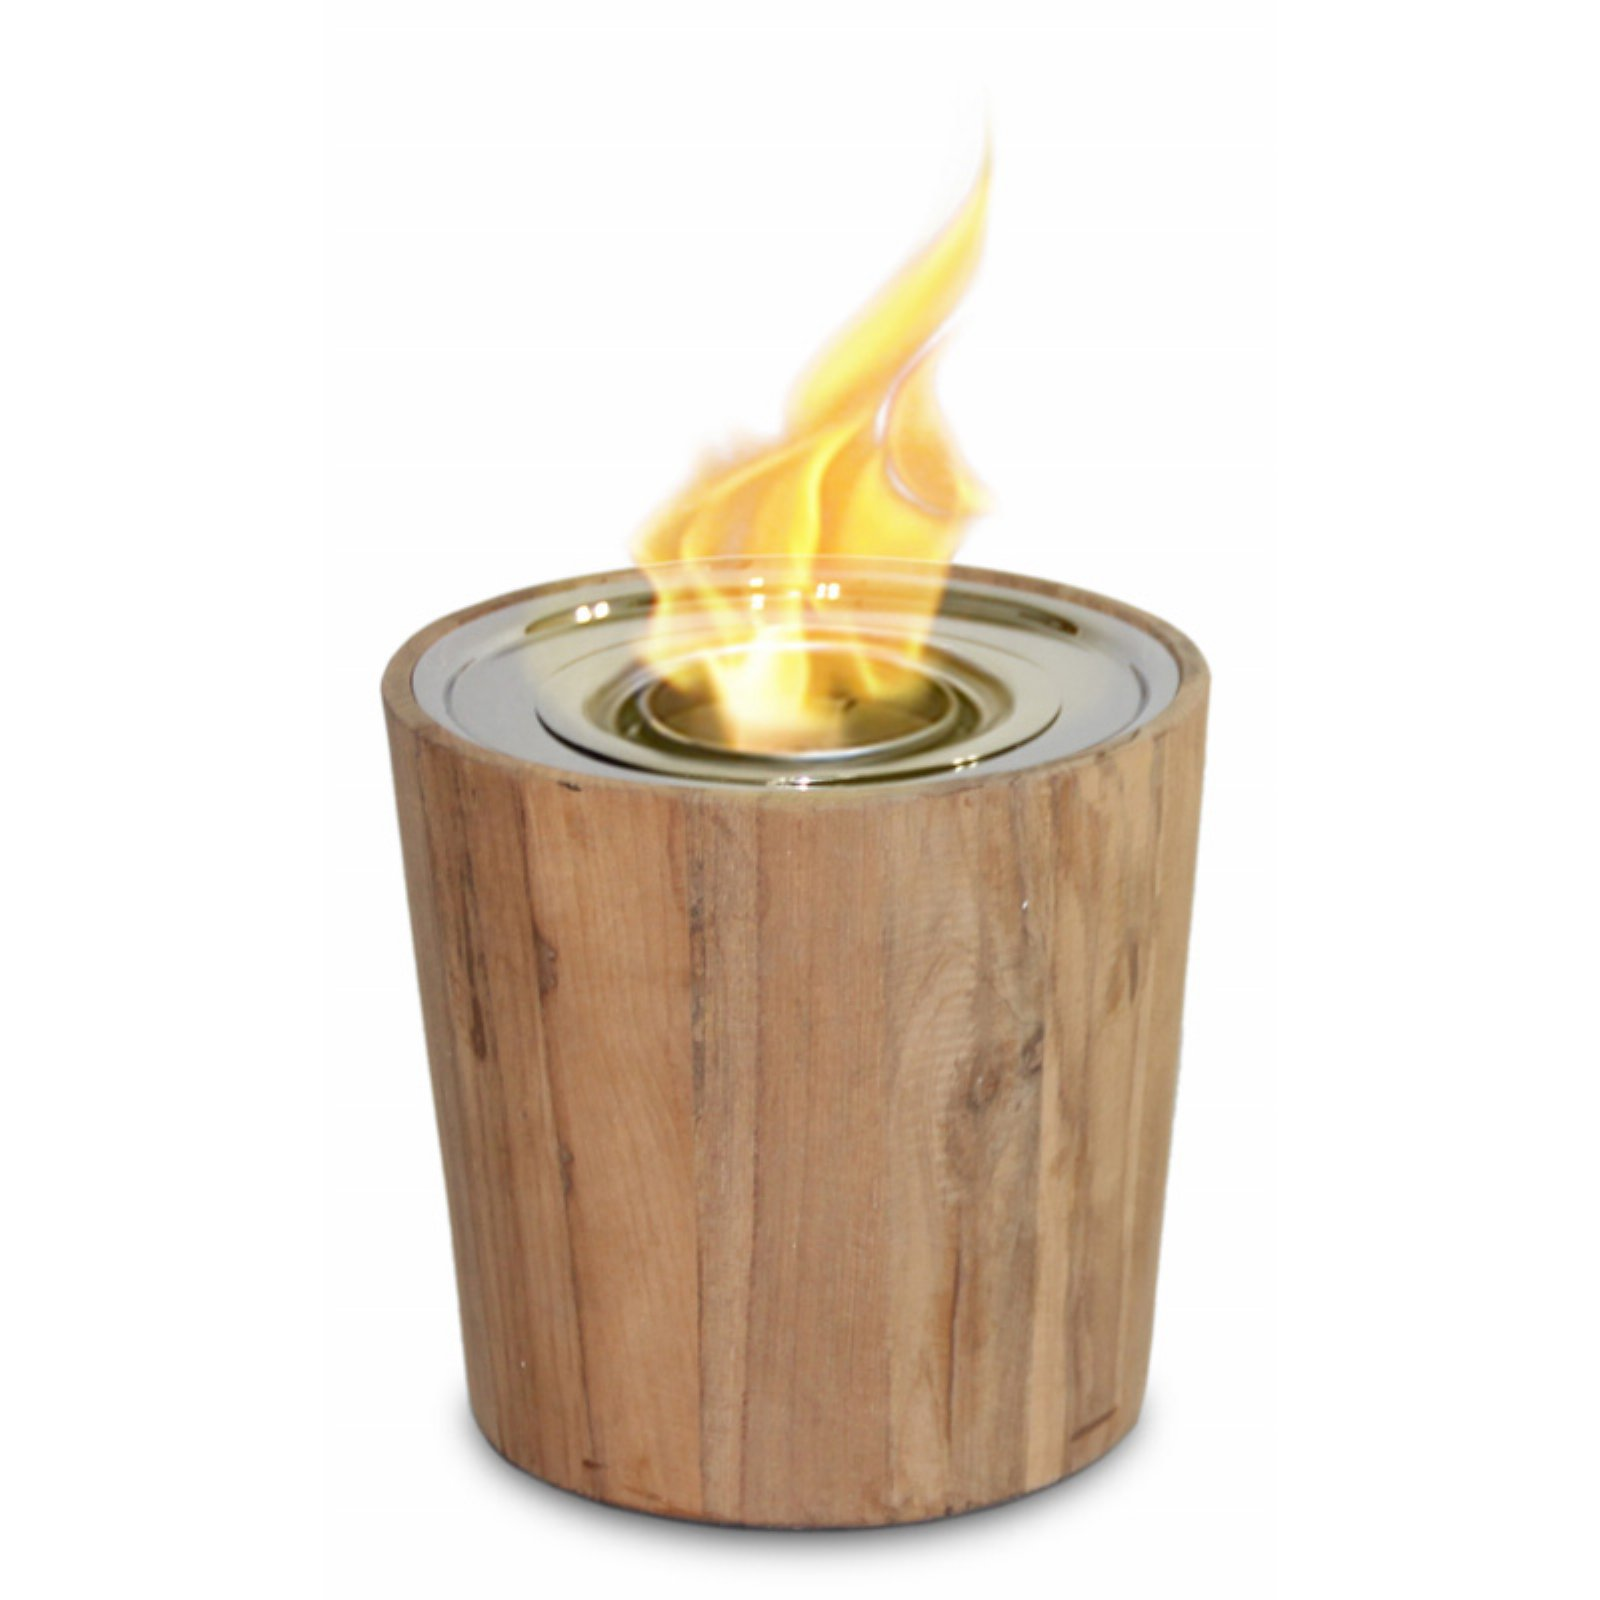 Anywhere Fireplace Sag Harbor Teak Indoor   Outdoor Fire Bowl by Anywhere Fireplace